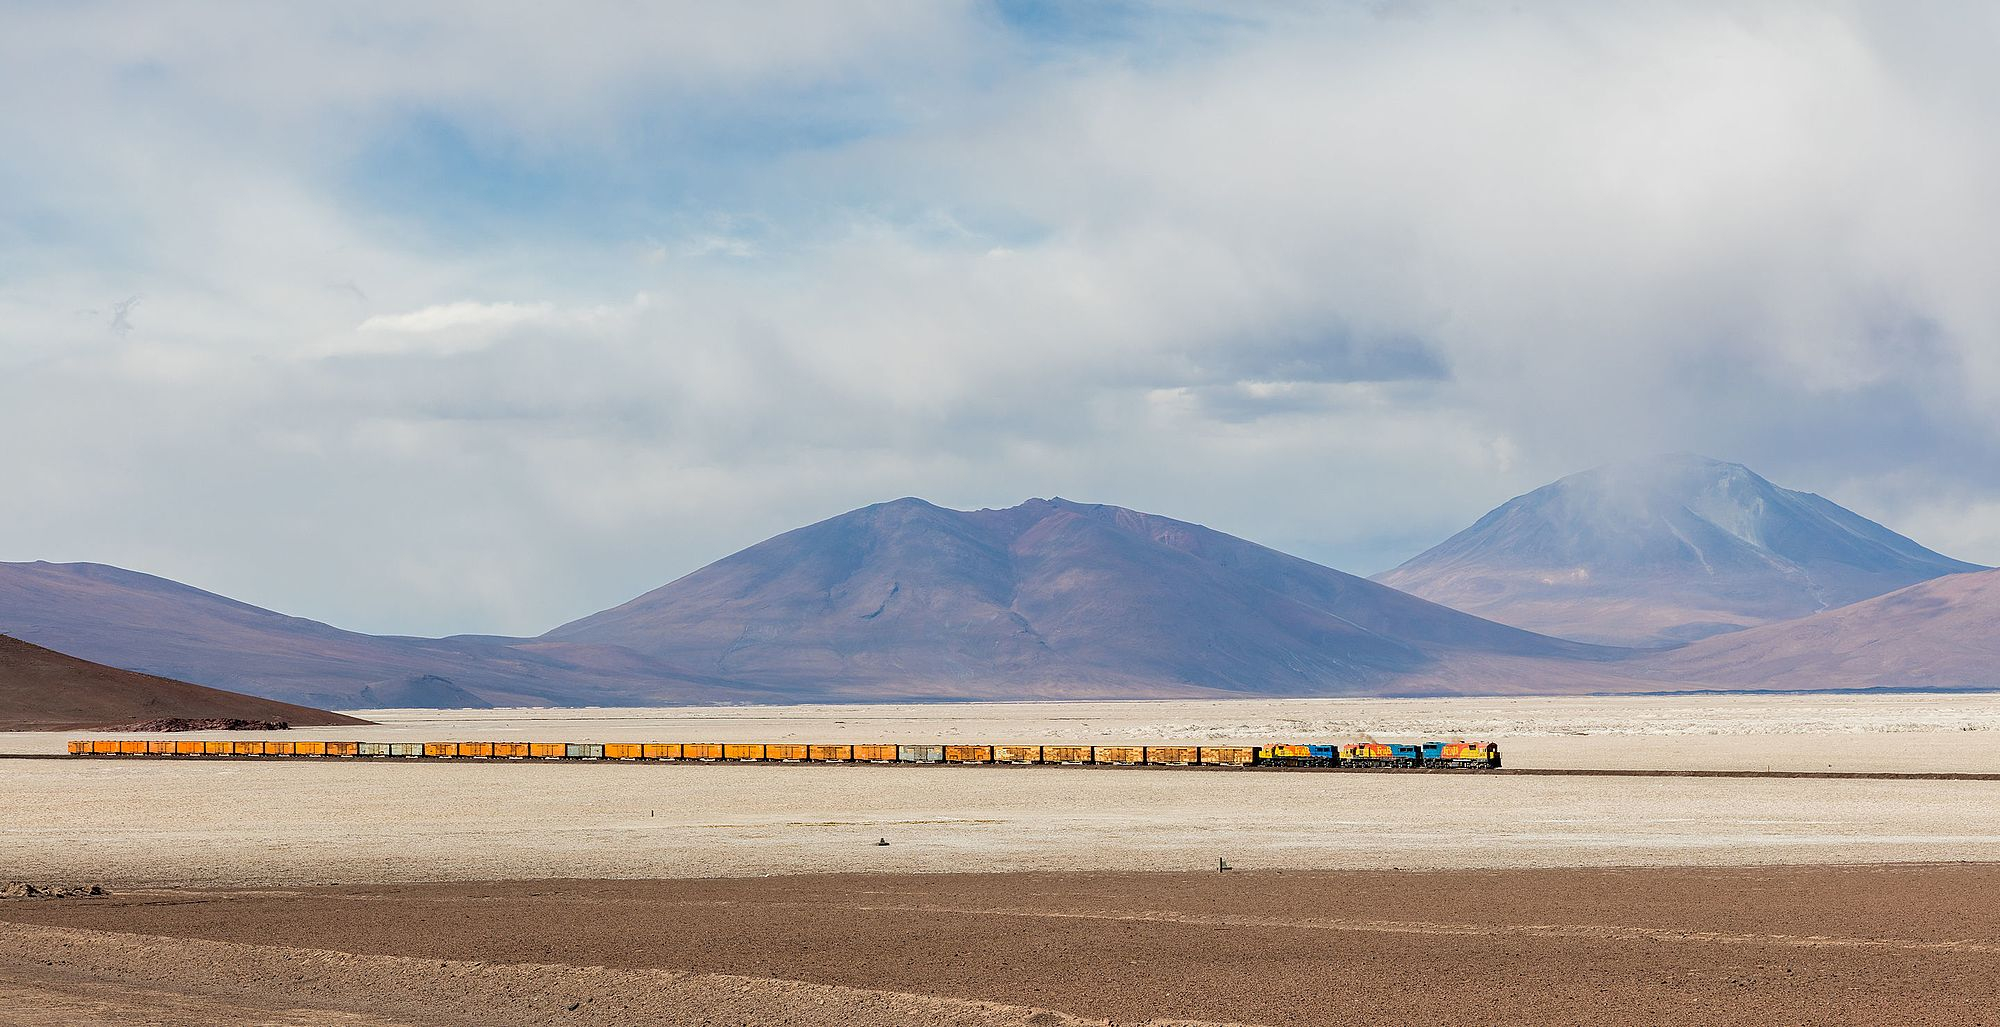 FCAB railway crossing the 35 km (22 mi) long route over the west side of the Ascotán salt flat, southwestern Bolivia.